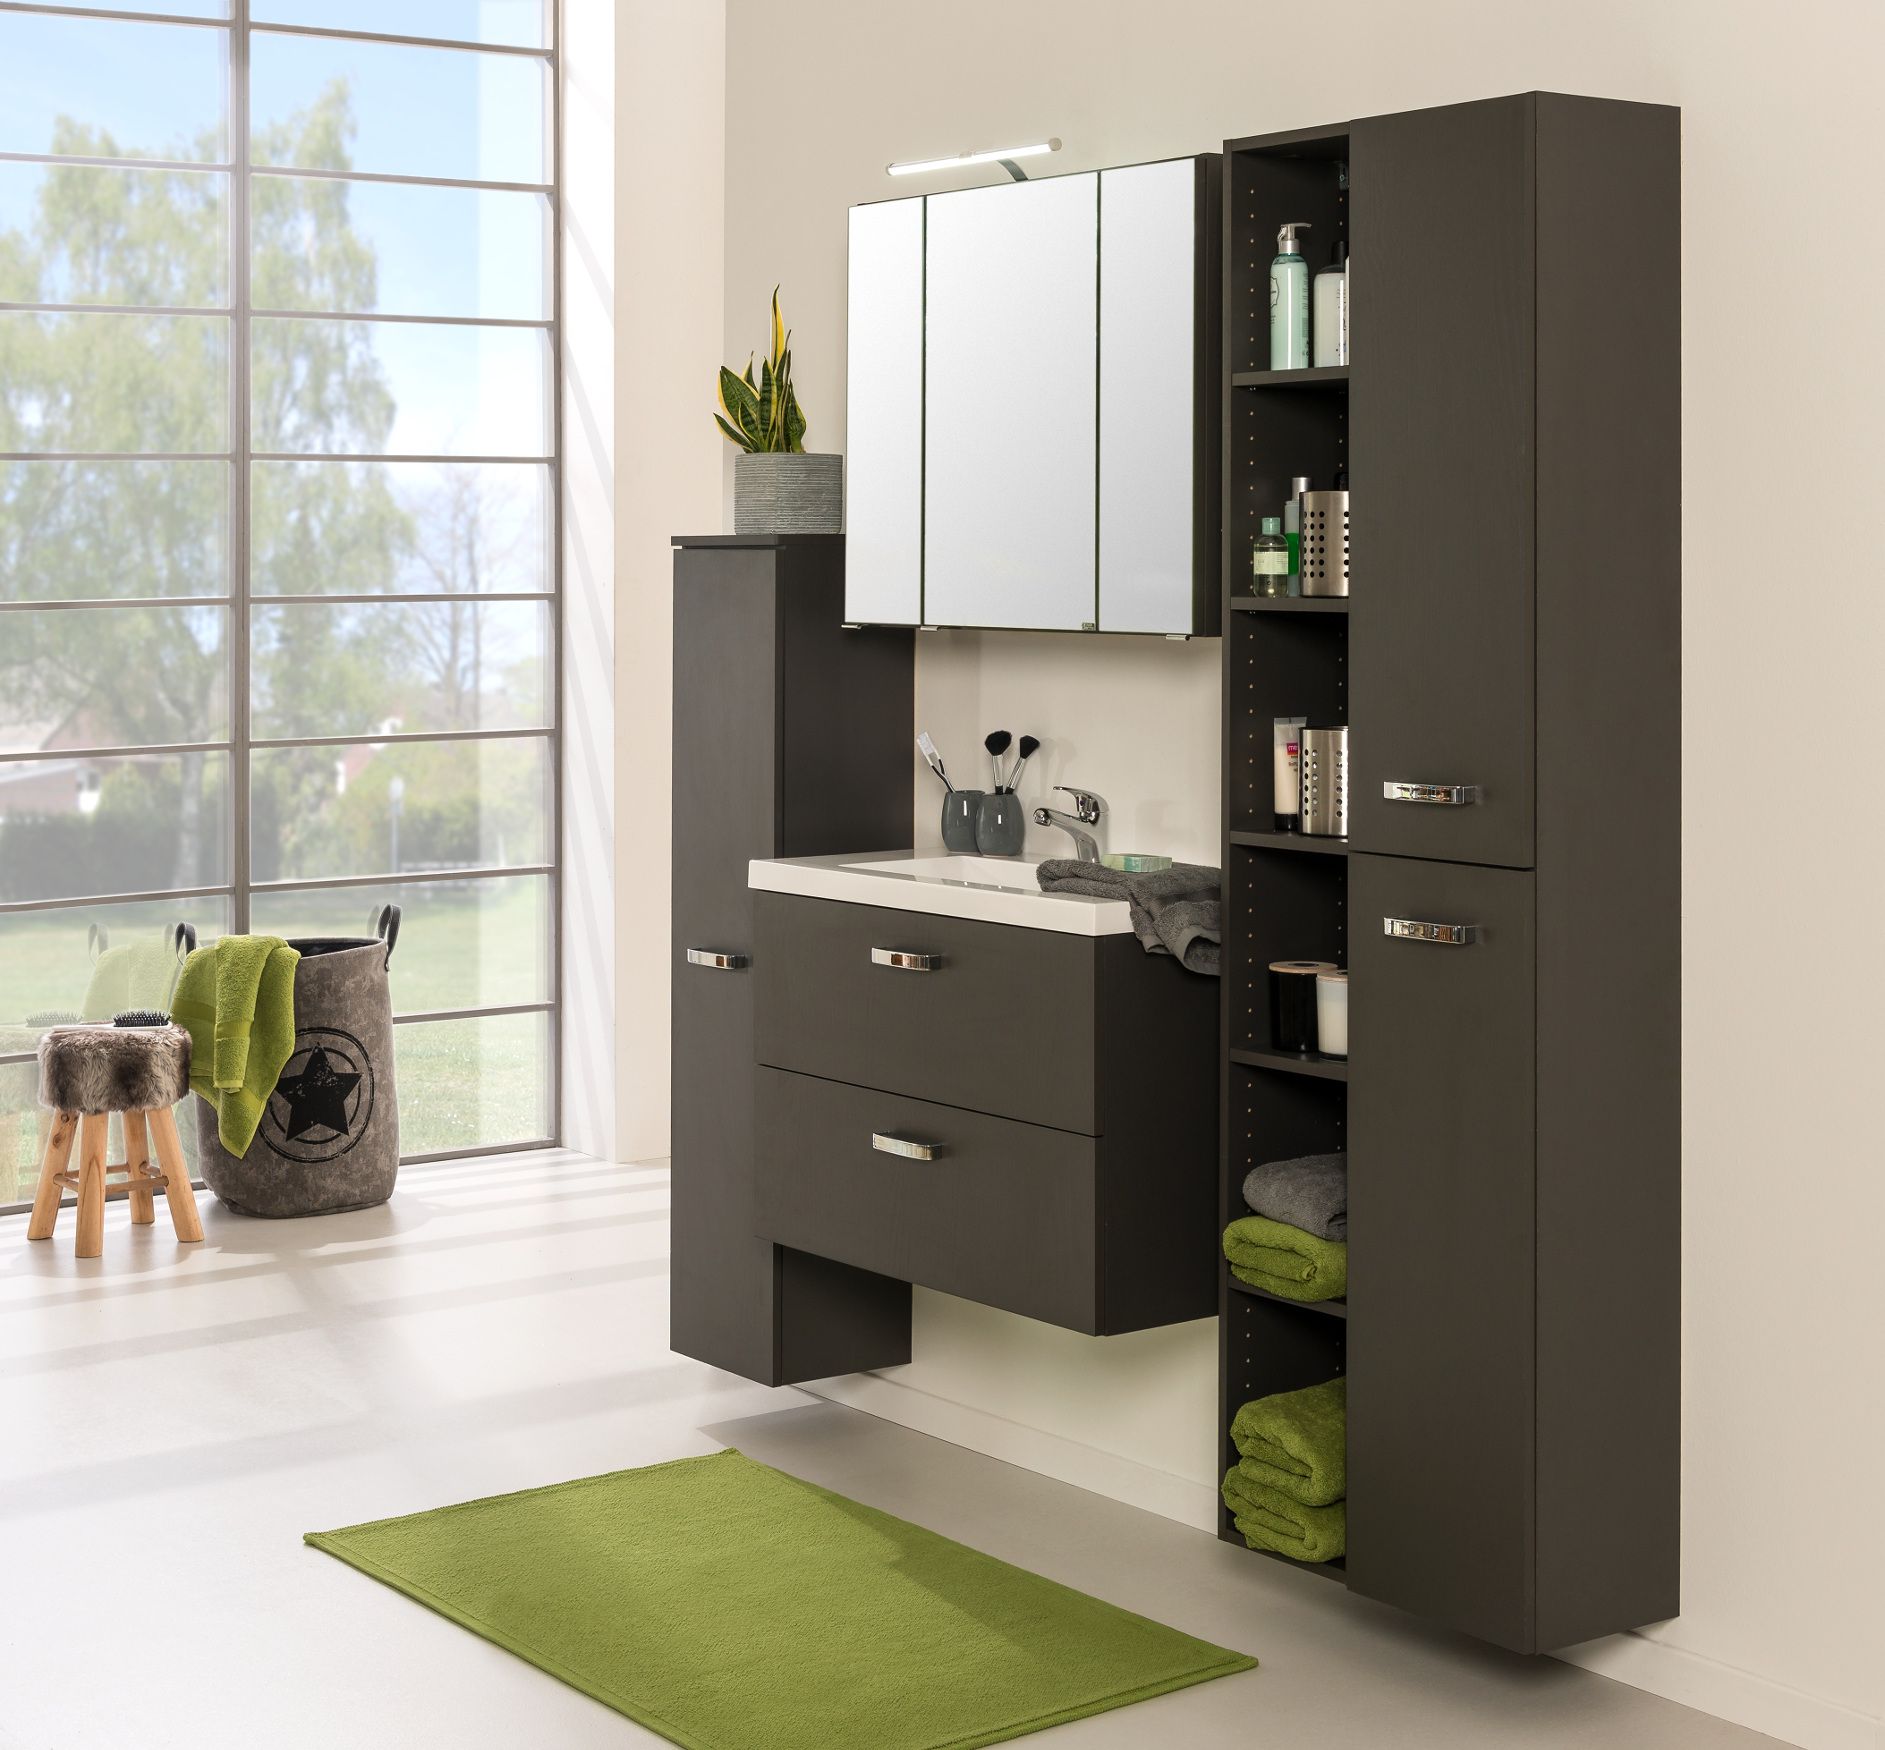 badm bel set montreal mit spiegelschrank 7 teilig 145 cm breit grau bad badm belsets. Black Bedroom Furniture Sets. Home Design Ideas